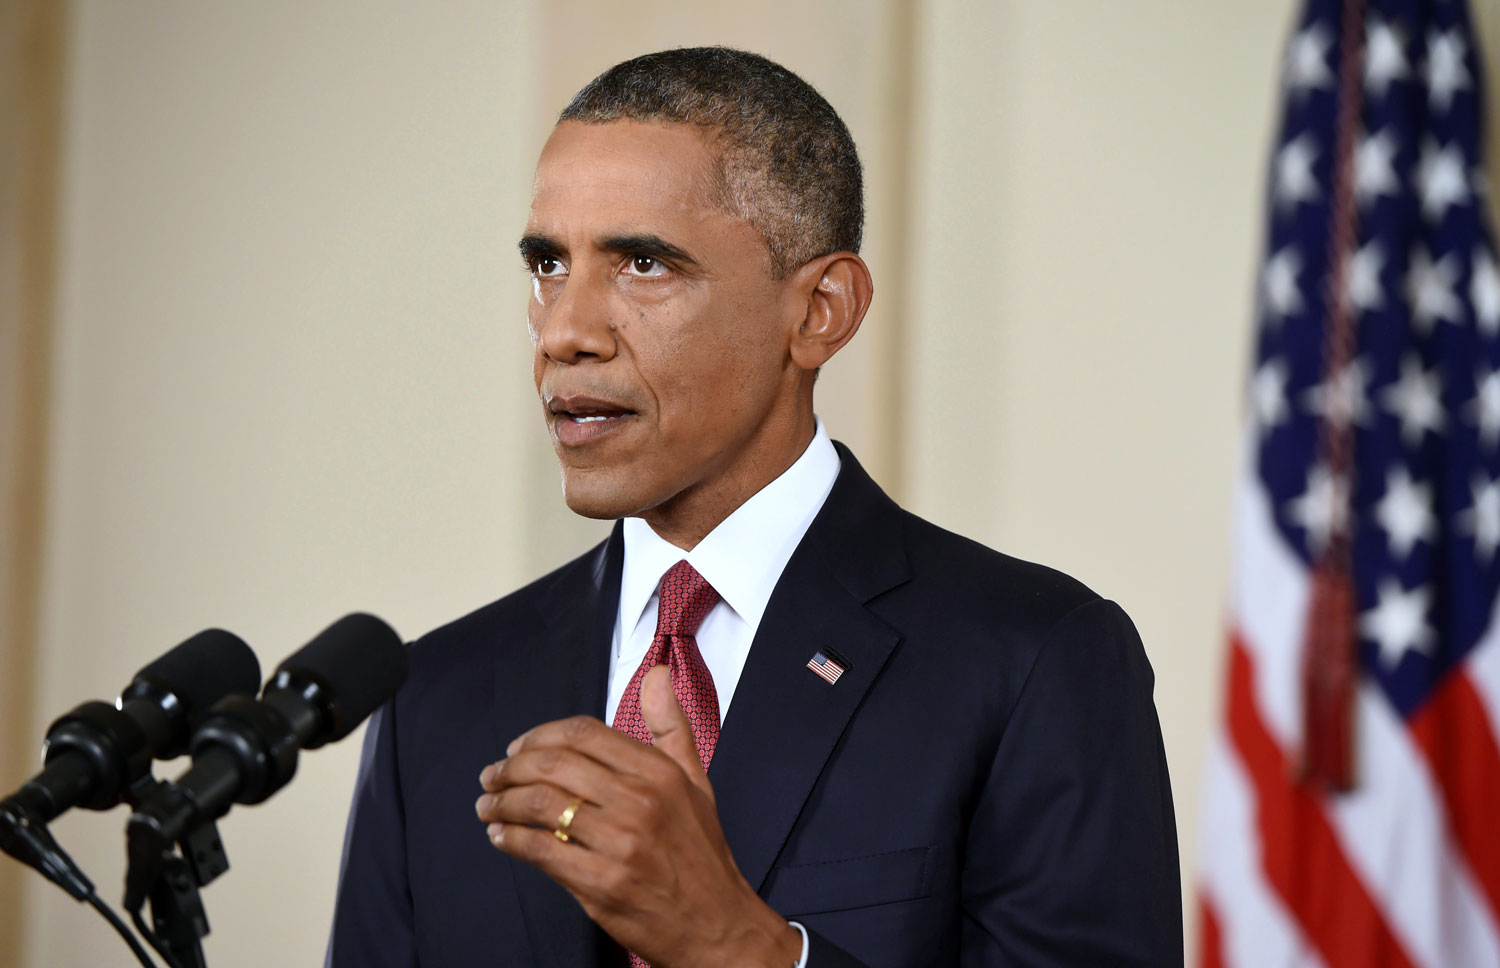 The-Speech-on-Diplomacy-That-Obama-Should-Have-Given-Last-Night